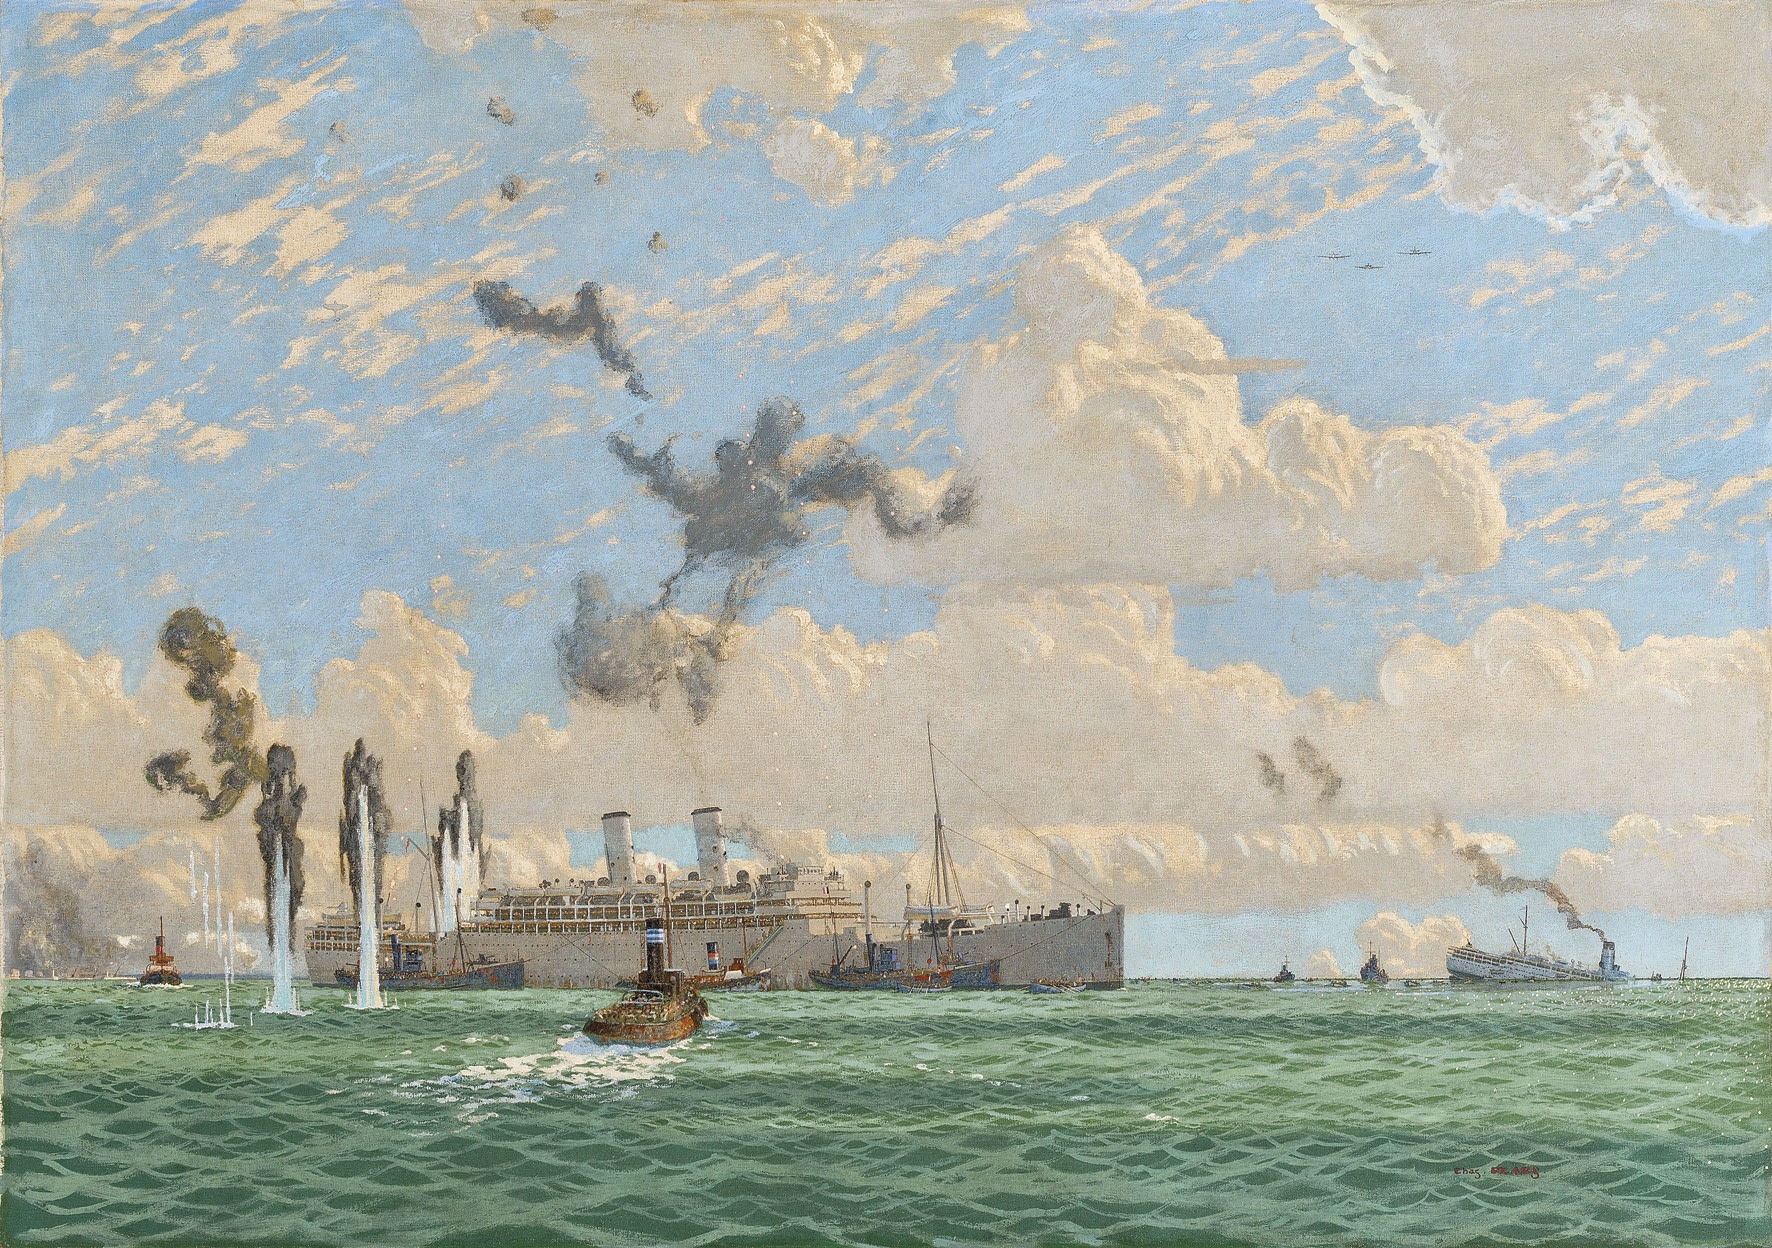 charles pears psma roi the evacuation of st nazaire 17th june 1940 maritime and war. Black Bedroom Furniture Sets. Home Design Ideas